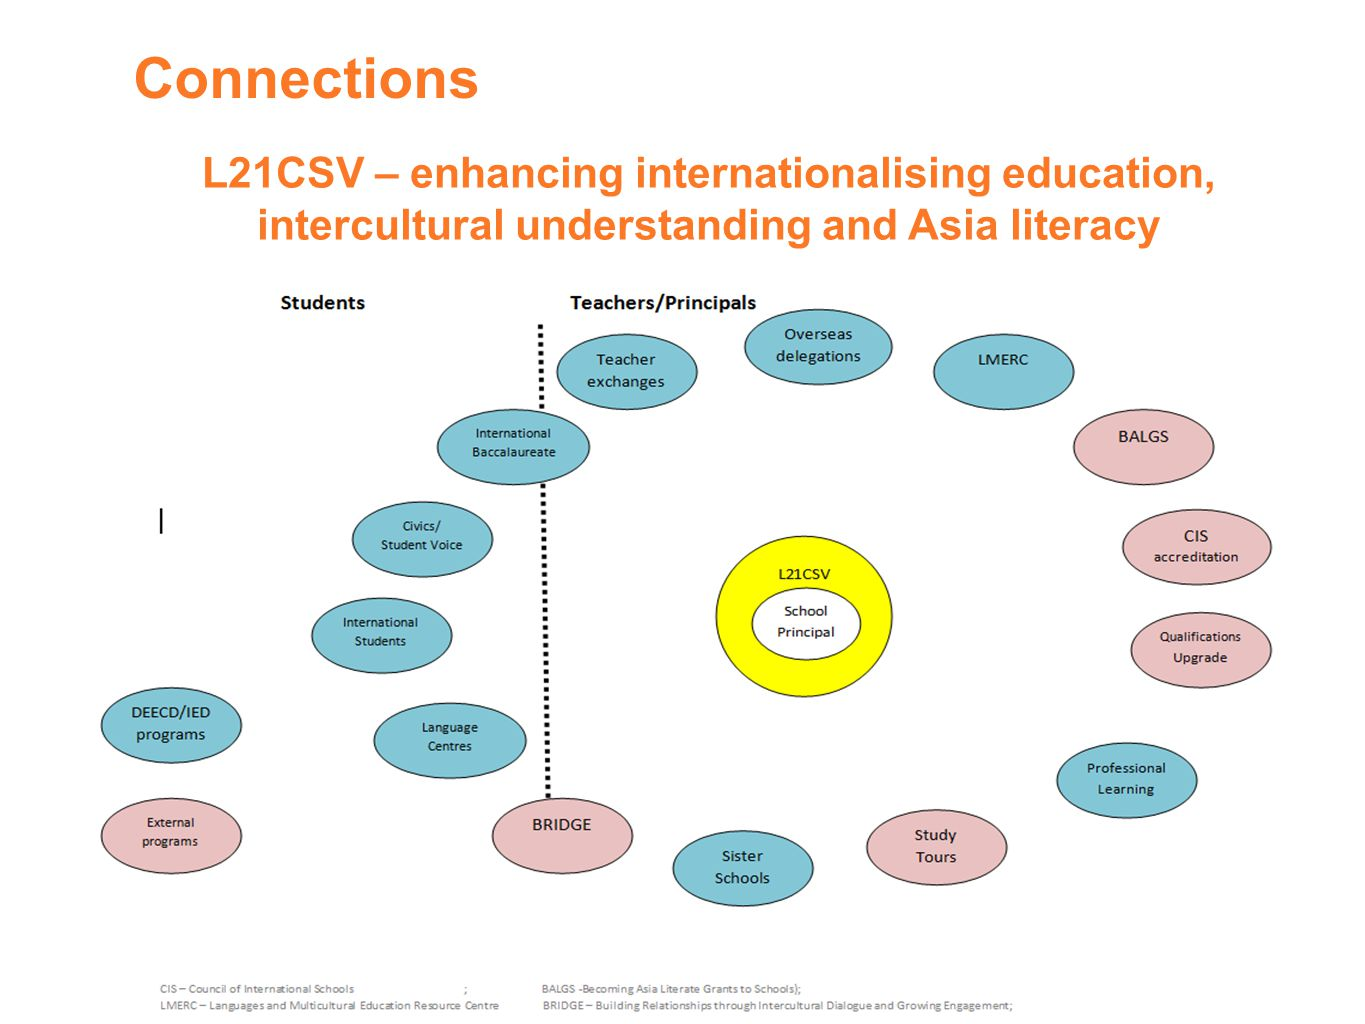 Connections L21CSV – enhancing internationalising education, intercultural understanding and Asia literacy